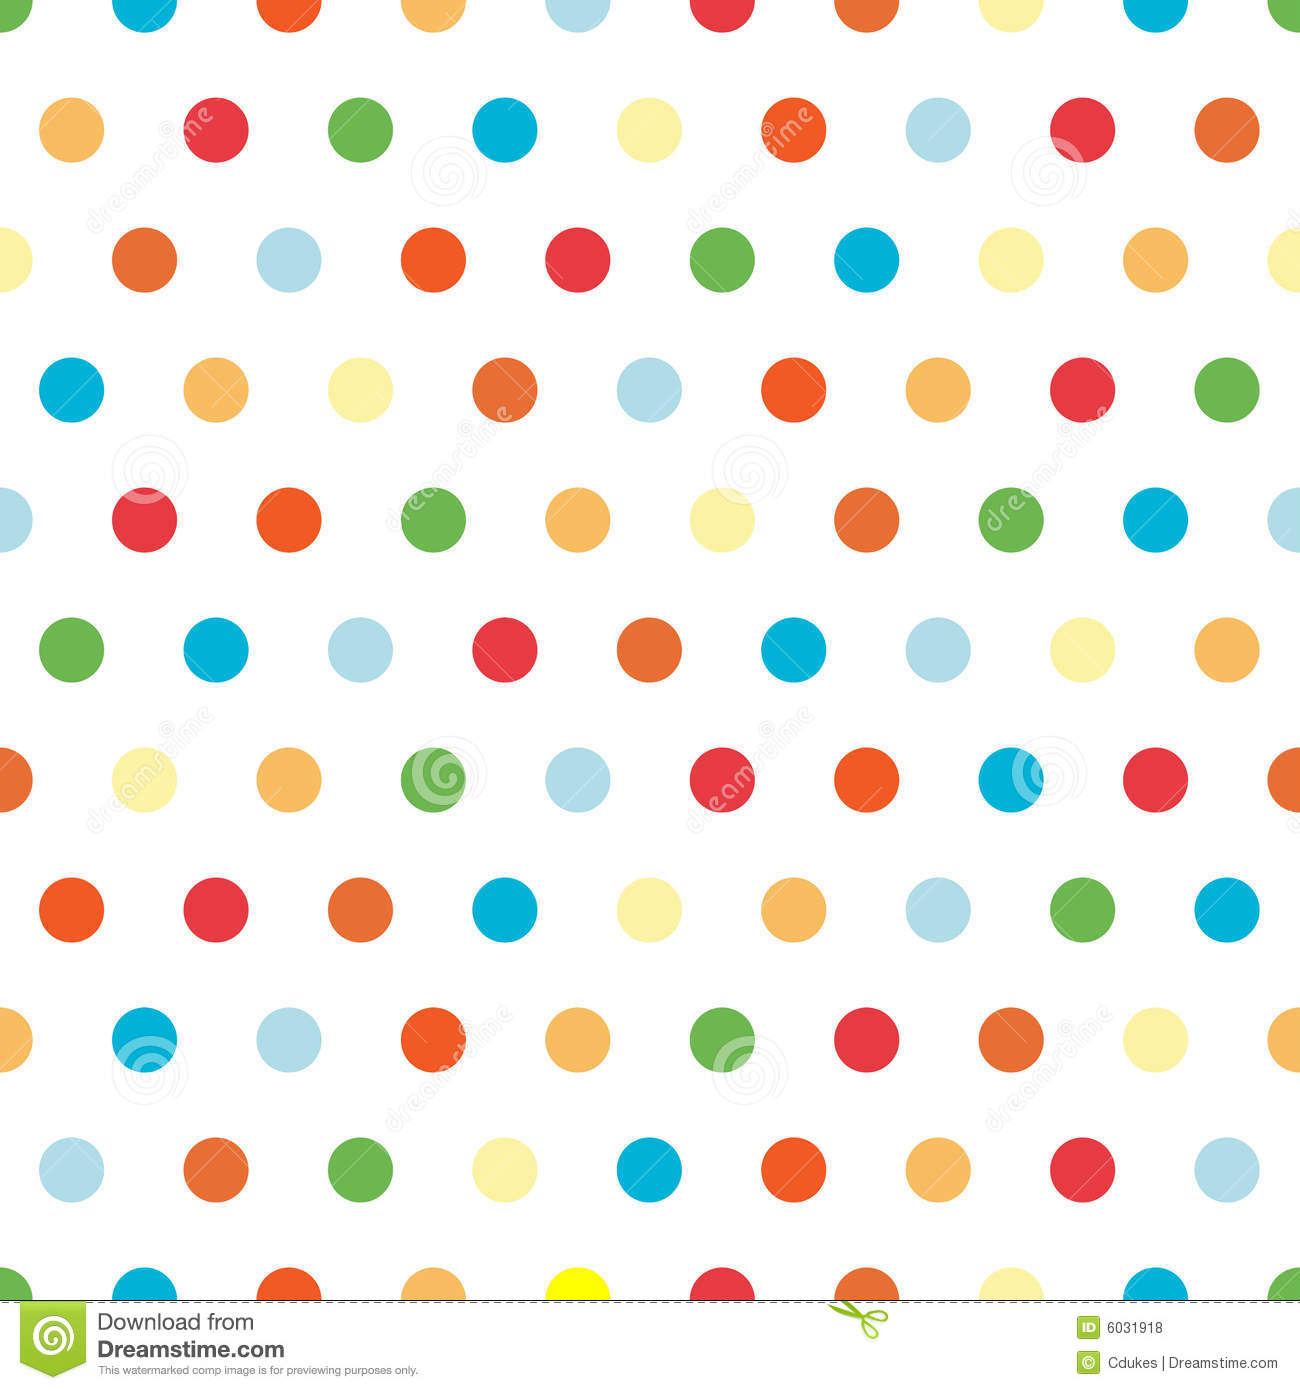 Bright Polka Dots Background Royalty Free Stock Photos   Image